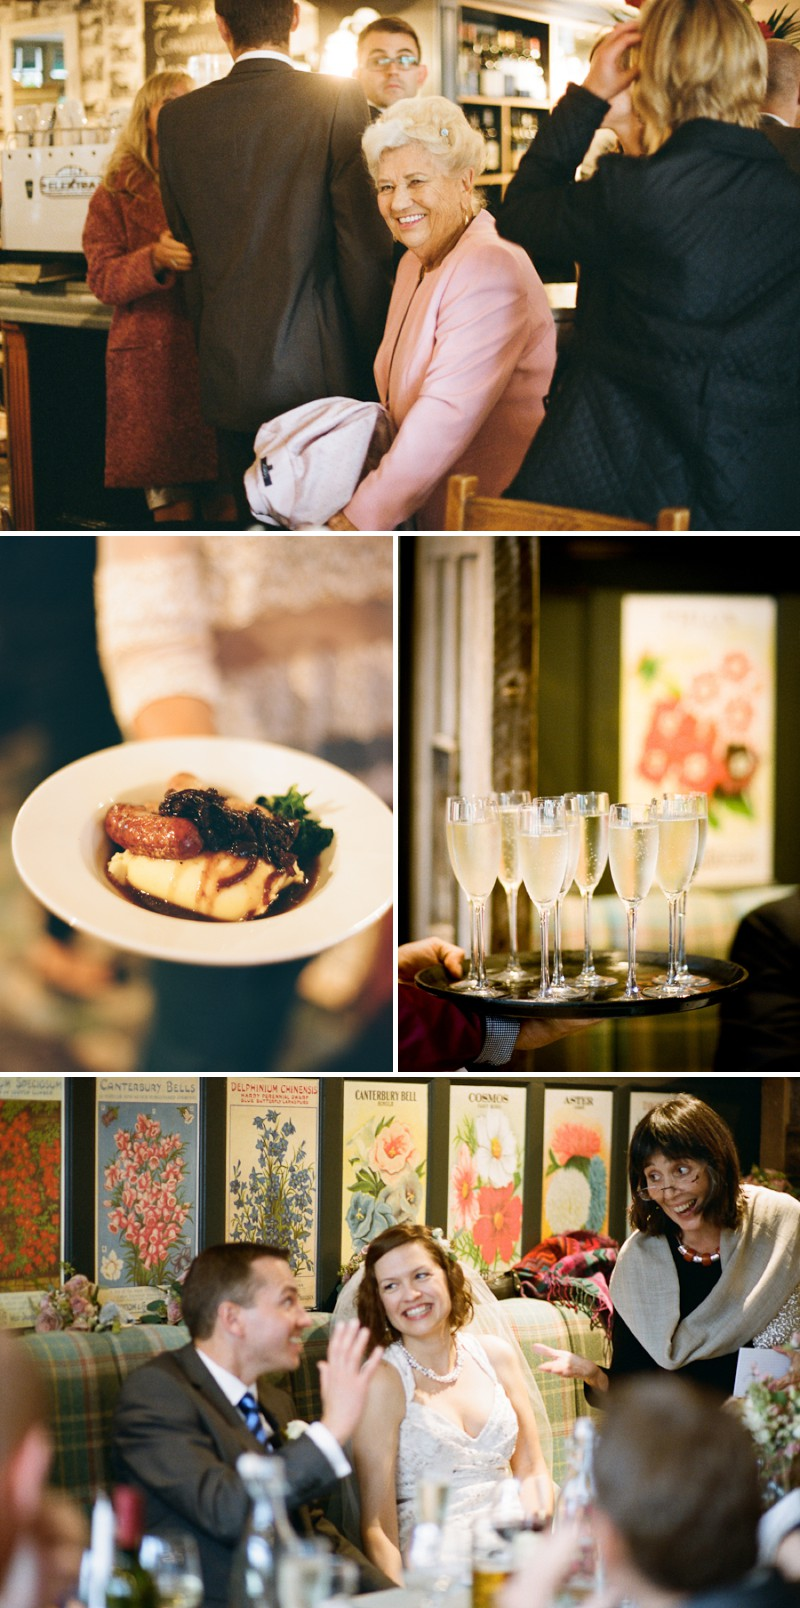 A Chic London Wedding At The Orleans House Gallery And White Horse Pub In Richmond With A JLM Couture Dress And Peach Antique Rose Bouquet By Peachey Photography._0011